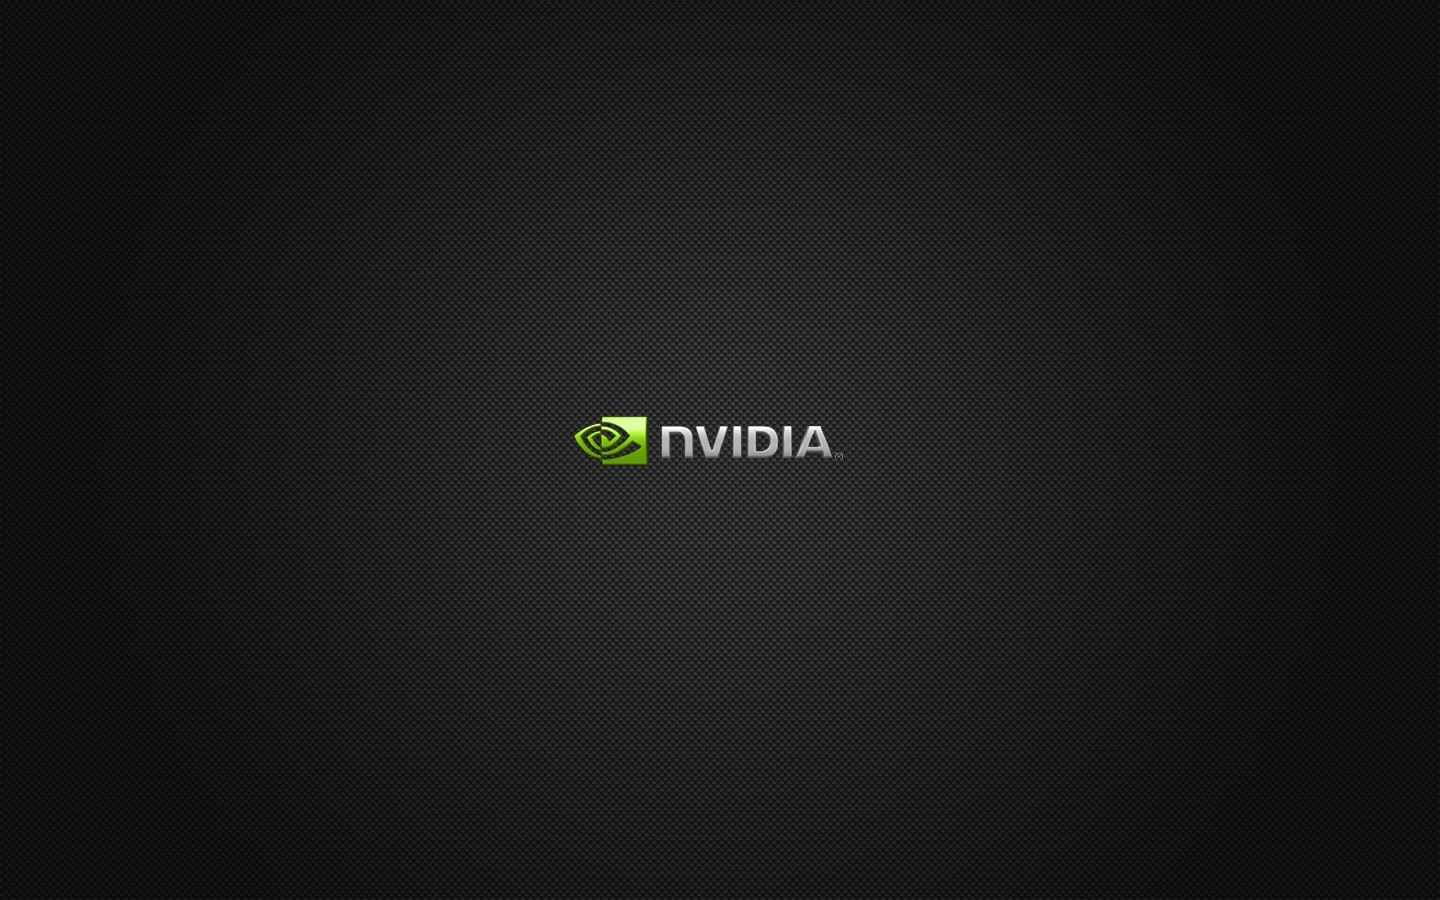 Black And Red Iphone Wallpaper Nvidia Wallpapers Pictures Images